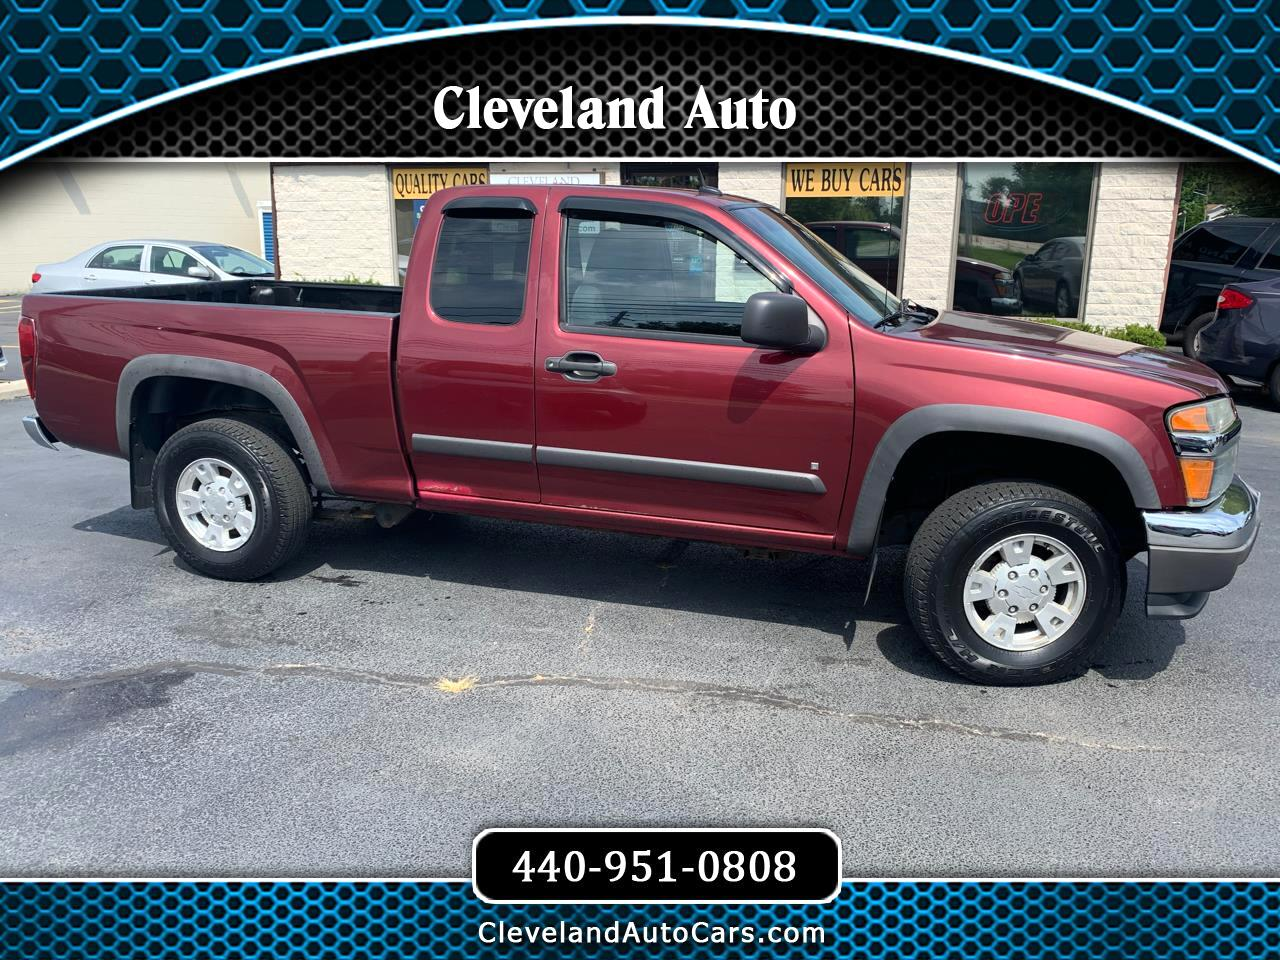 "Chevrolet Colorado 4WD Ext Cab 125.9"" LT w/1LT 2008"